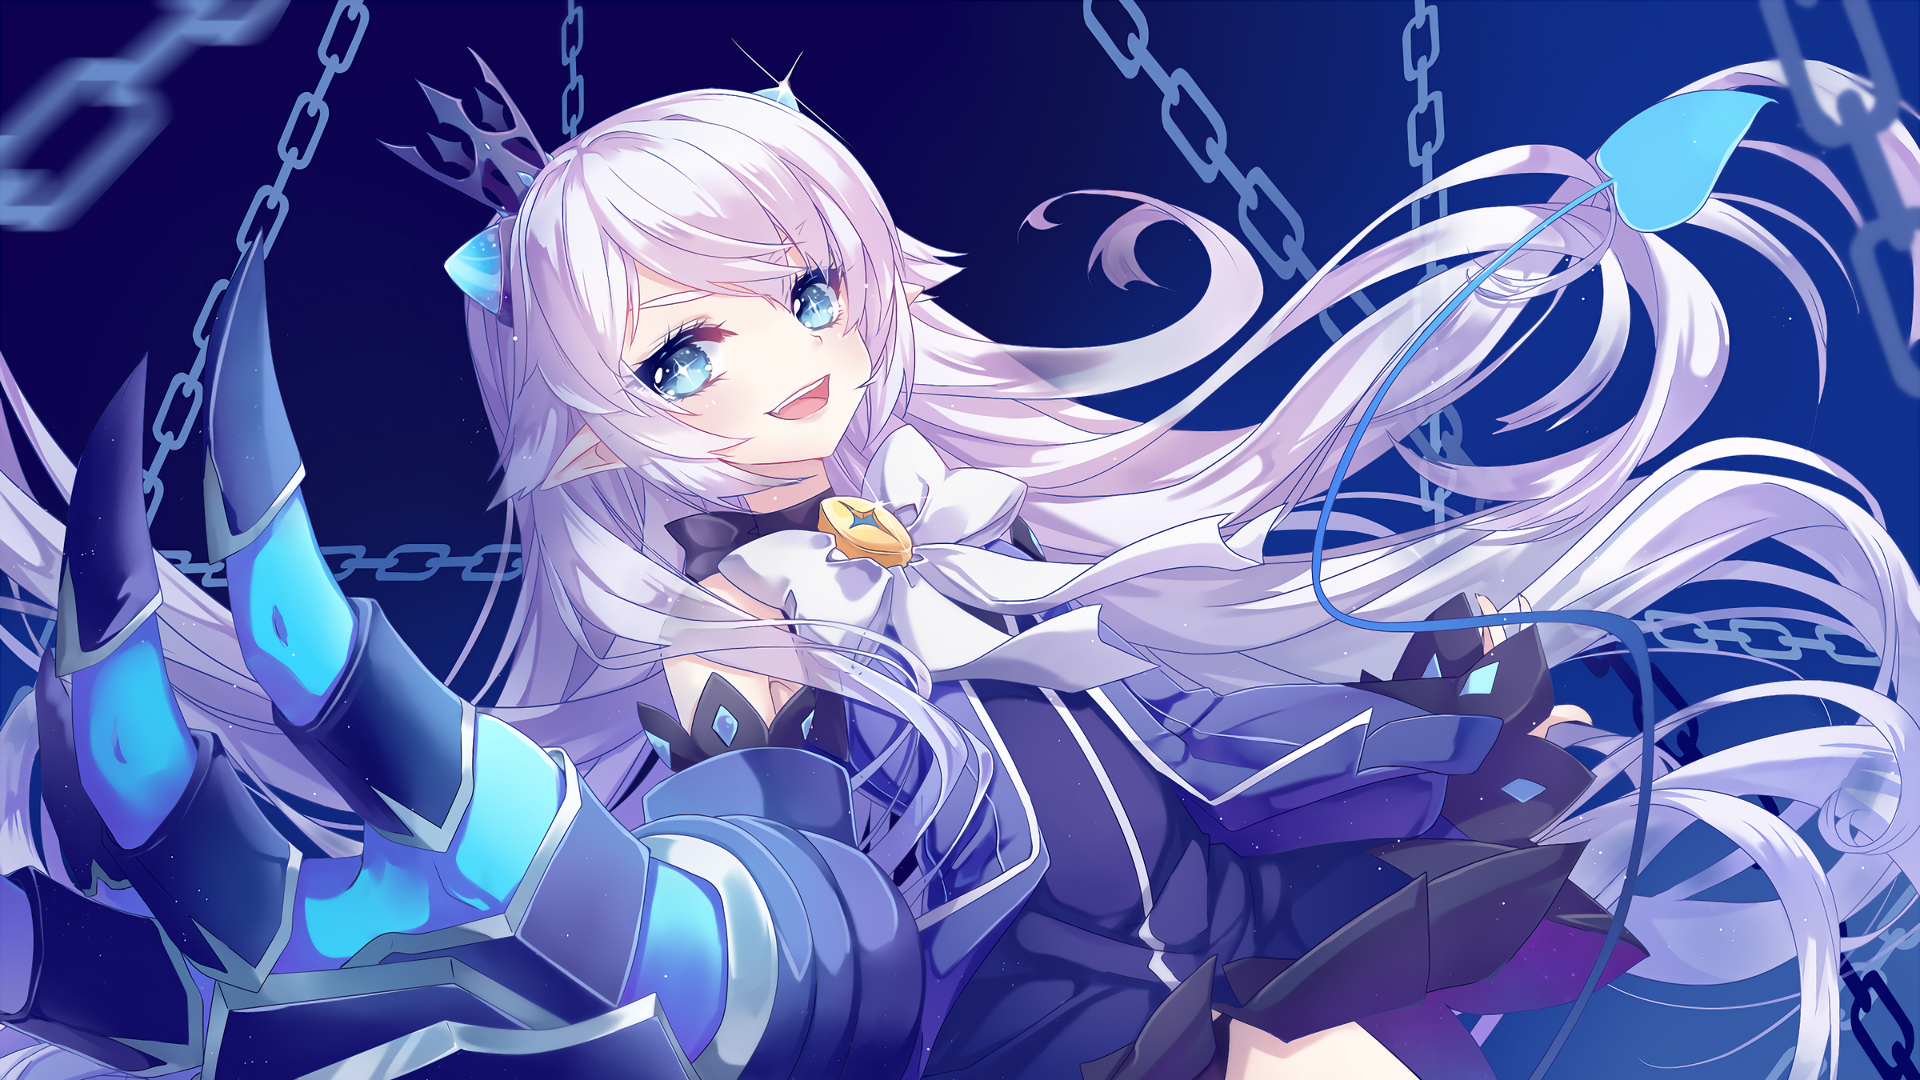 124 elsword hd wallpapers background images wallpaper abyss hd wallpaper background image id608643 1920x1080 video game elsword voltagebd Choice Image